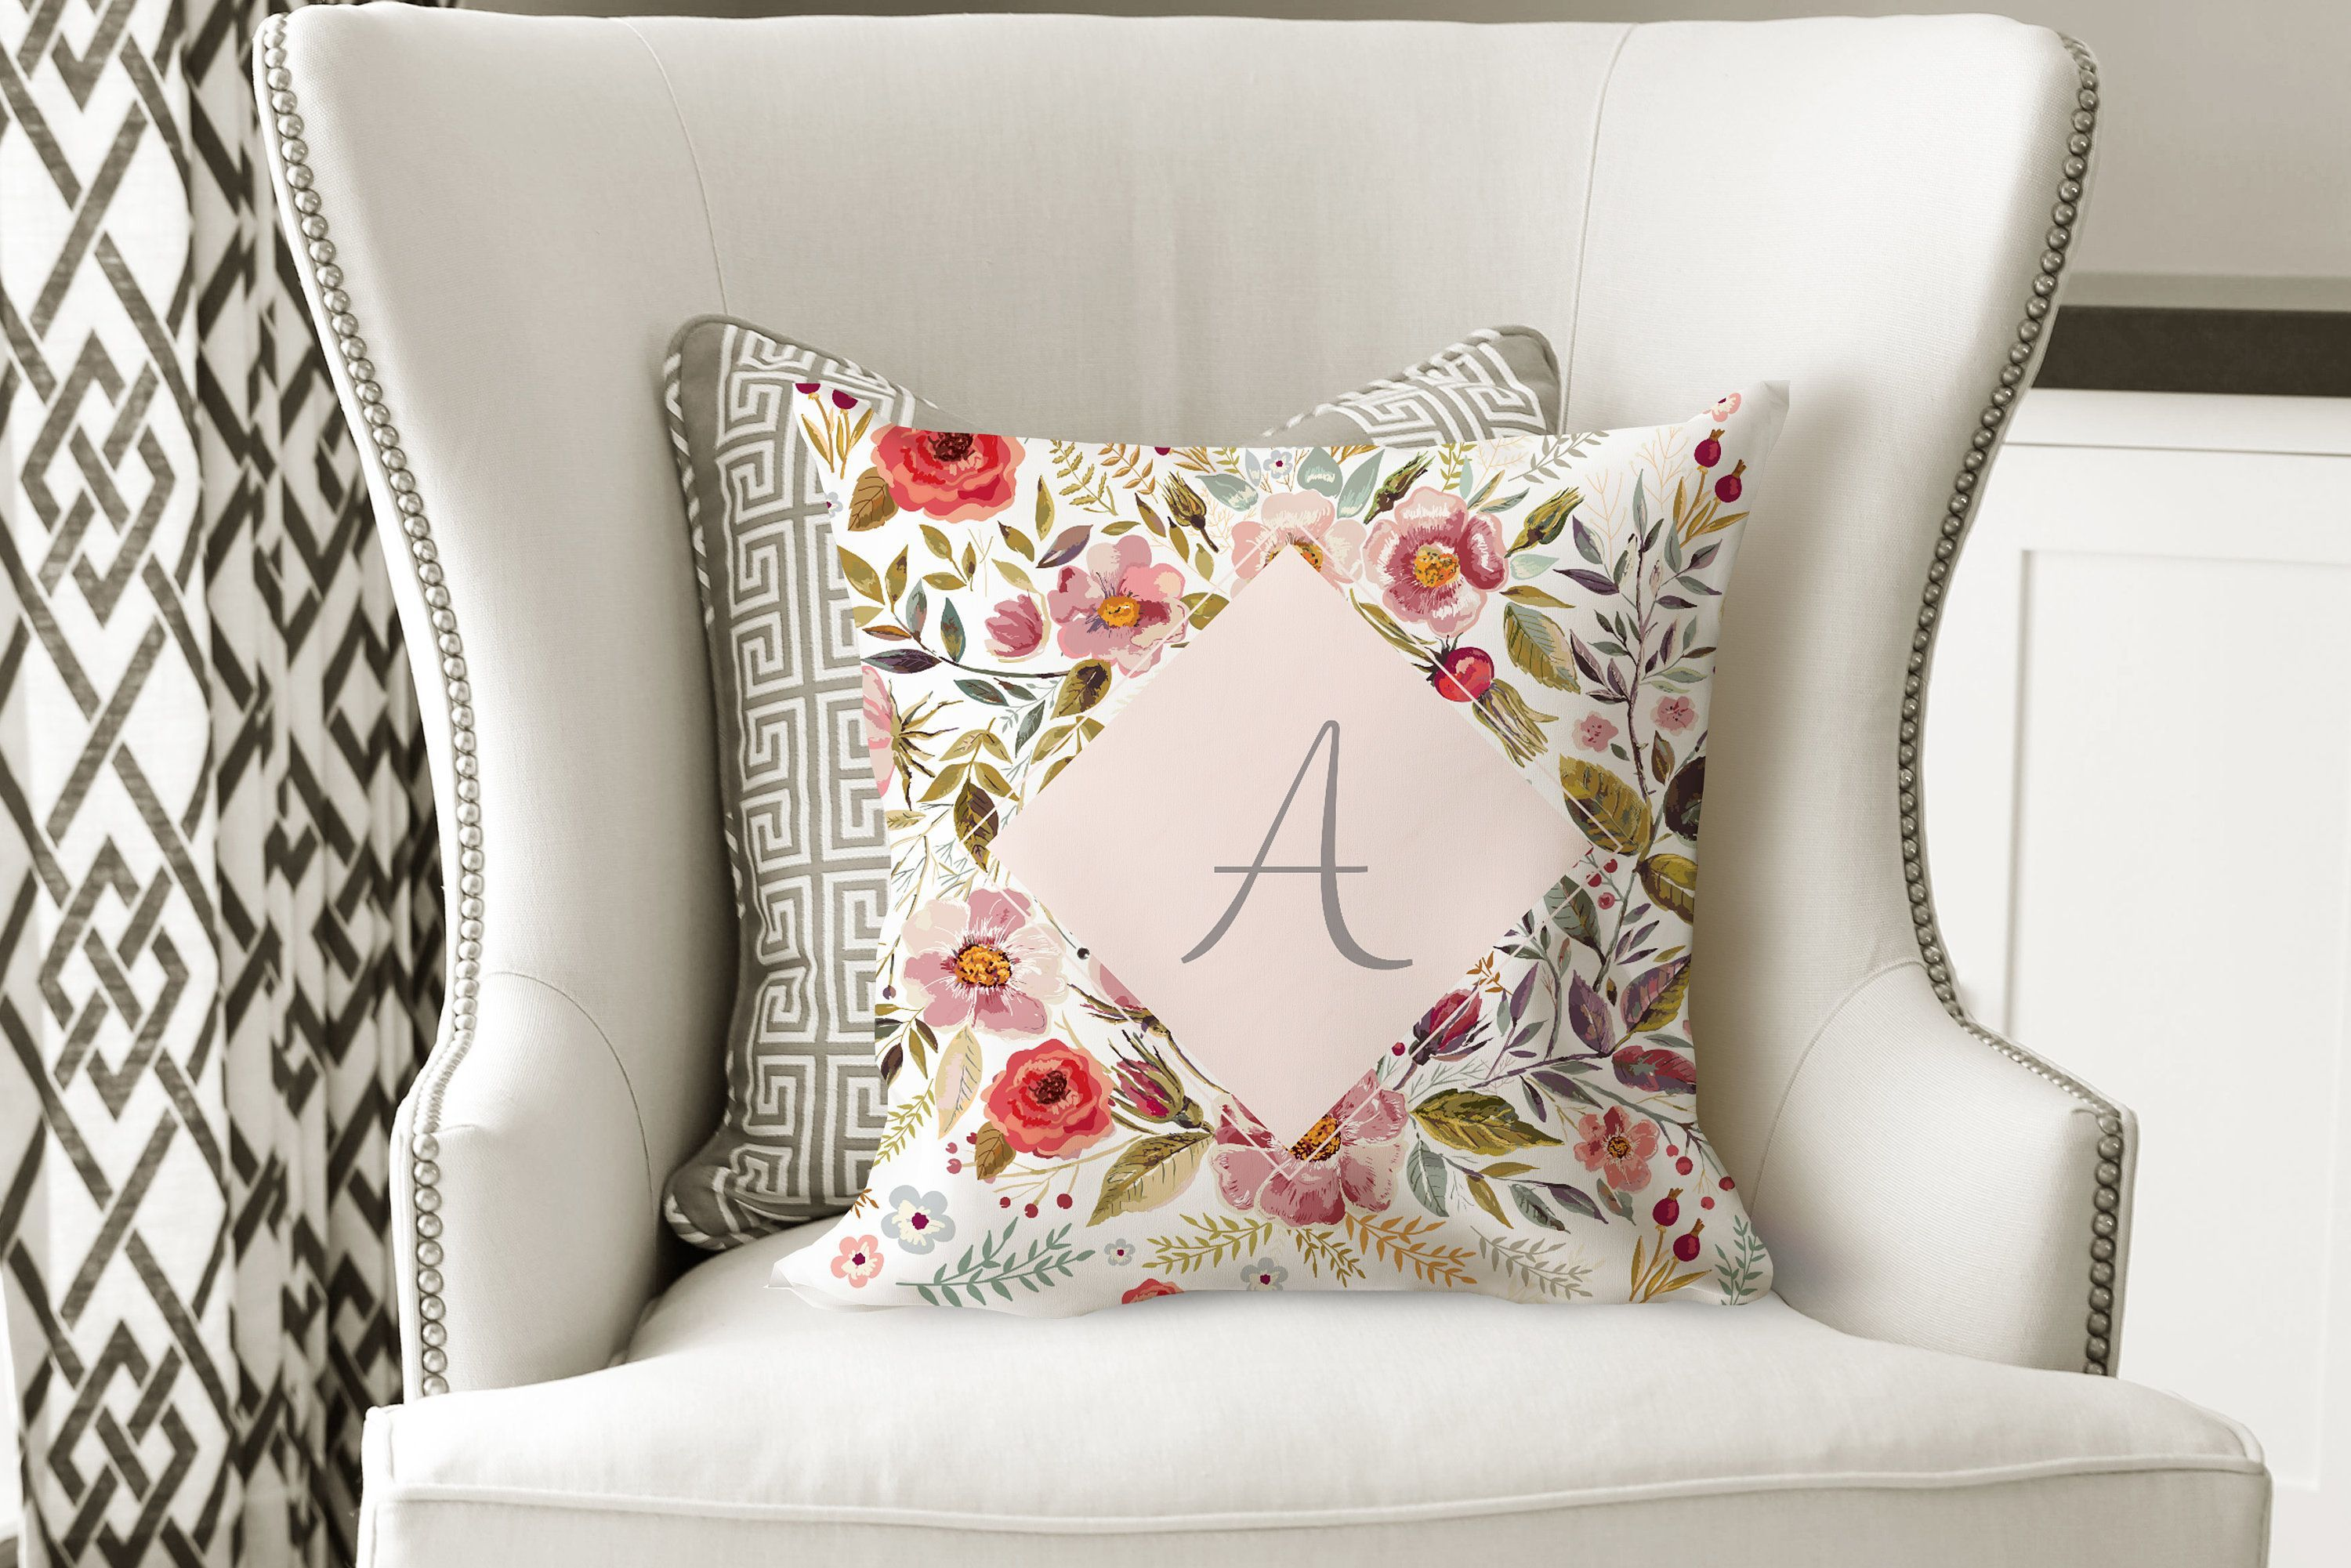 Personalized Letter Throw Pillow Floral Accent Pillow Custom Throw Pillow Kids Room Decor Letter Throw Pillows Floral Accent Pillow Throw Pillows